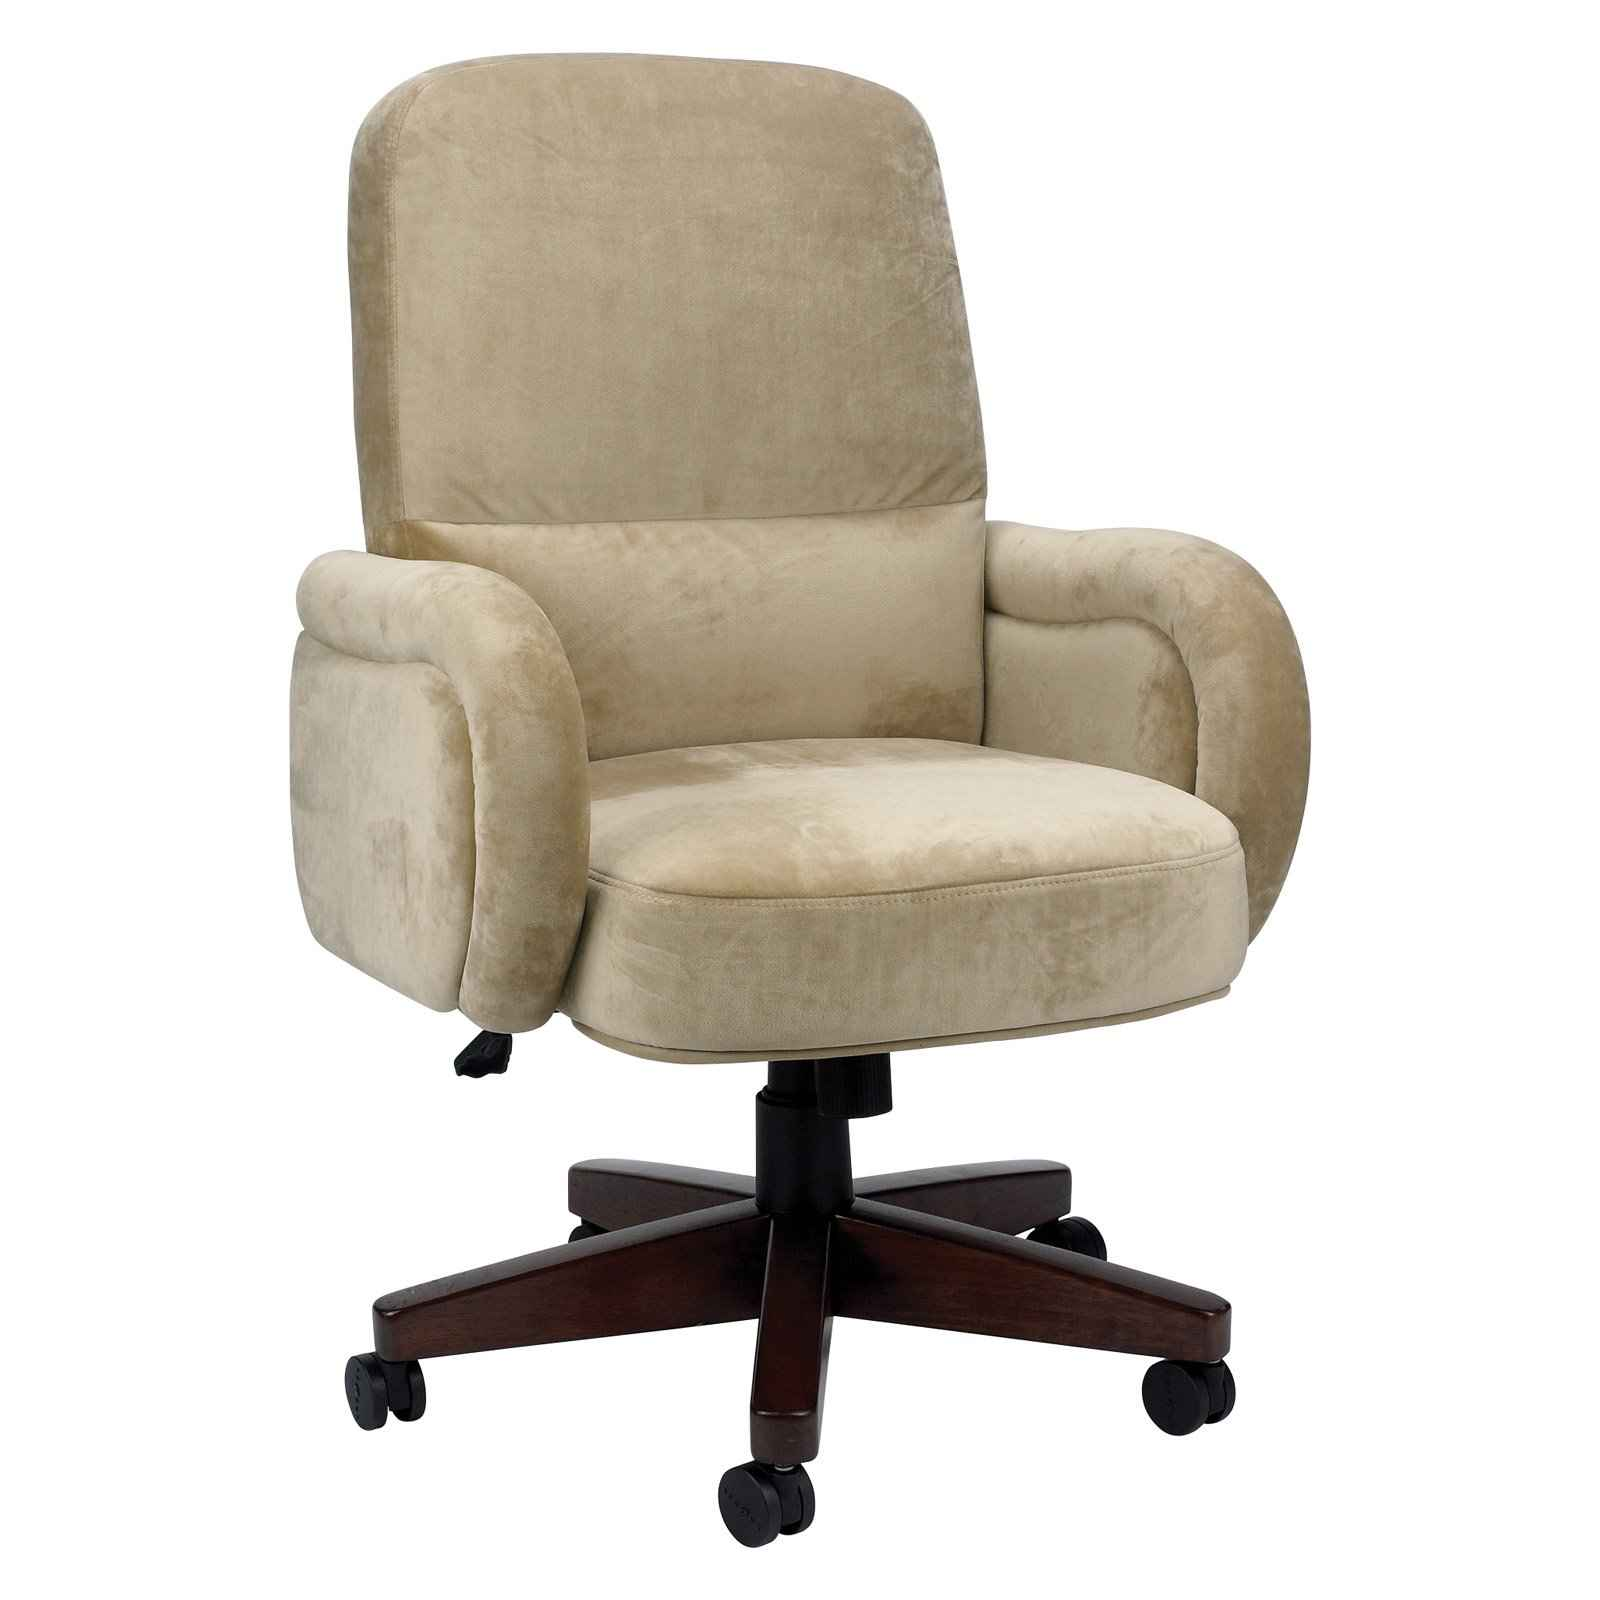 Boulder Luxury Microsuede Executive Office Chair from La-Z-Boy